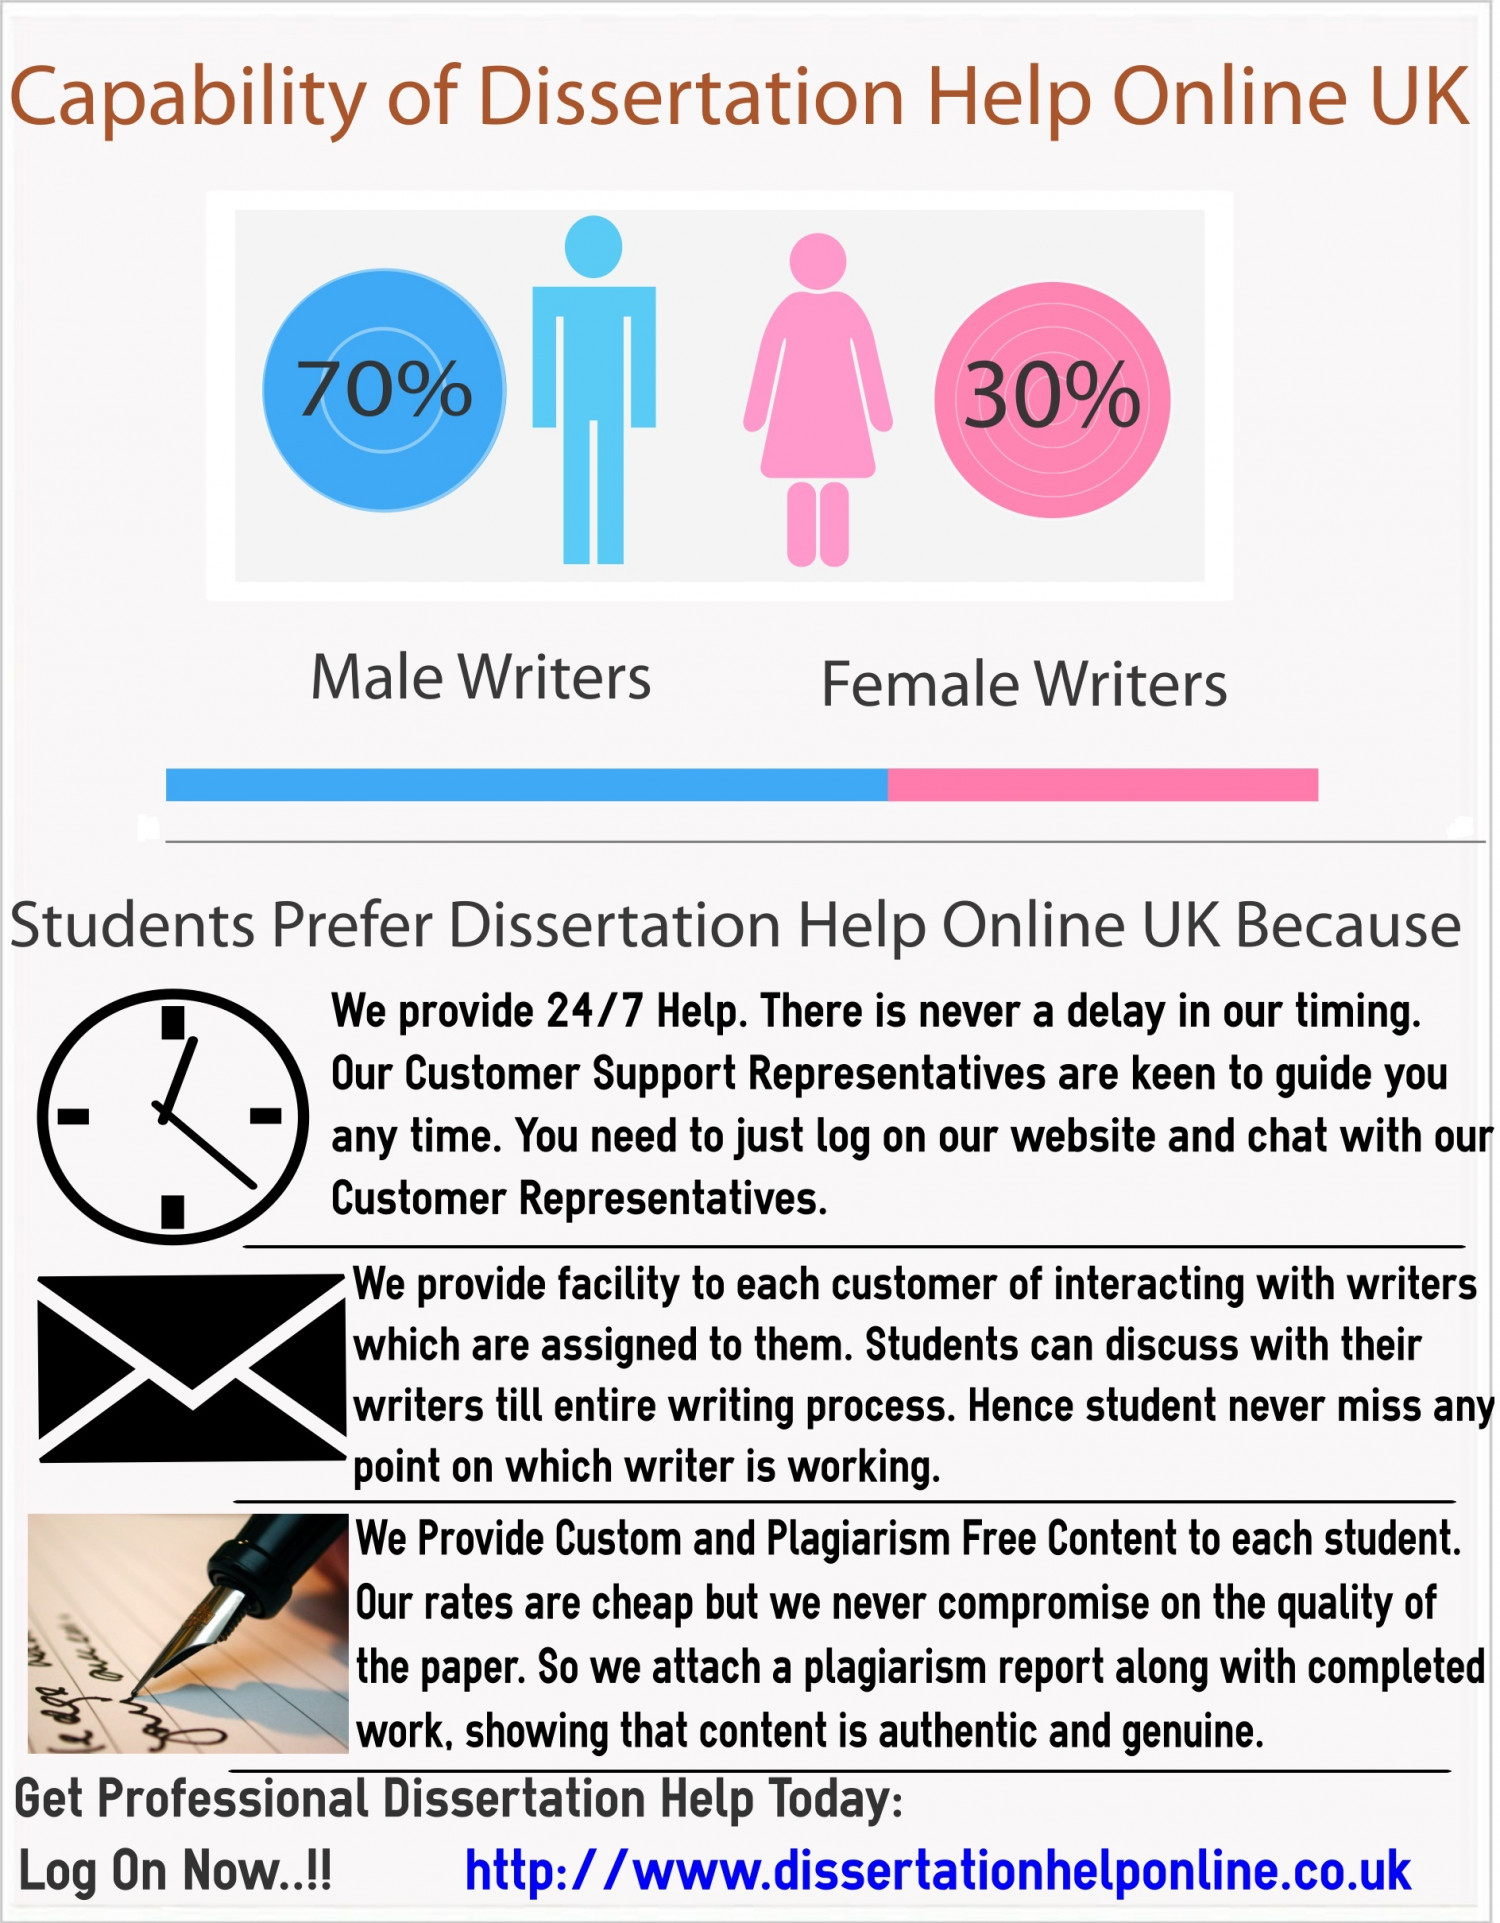 phd thesis in uk We offer professional & affordable dissertation & thesis editing & proofreading services of the highest academic quality for undergraduate, master's & phd students working in all fields of study across the sciences, social sciences & humanities.